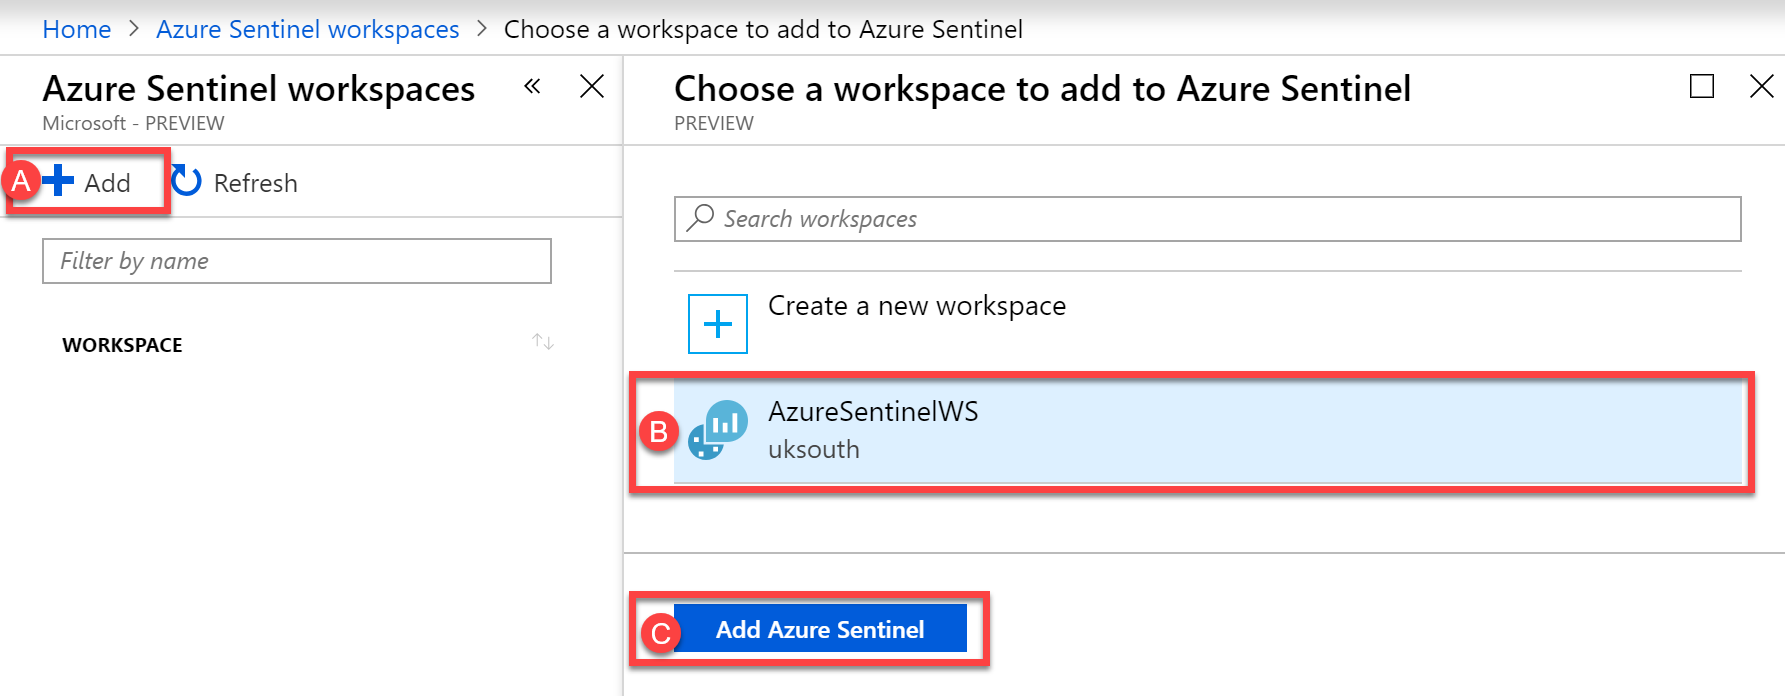 Choose a workspace to add to Azure Sentinel